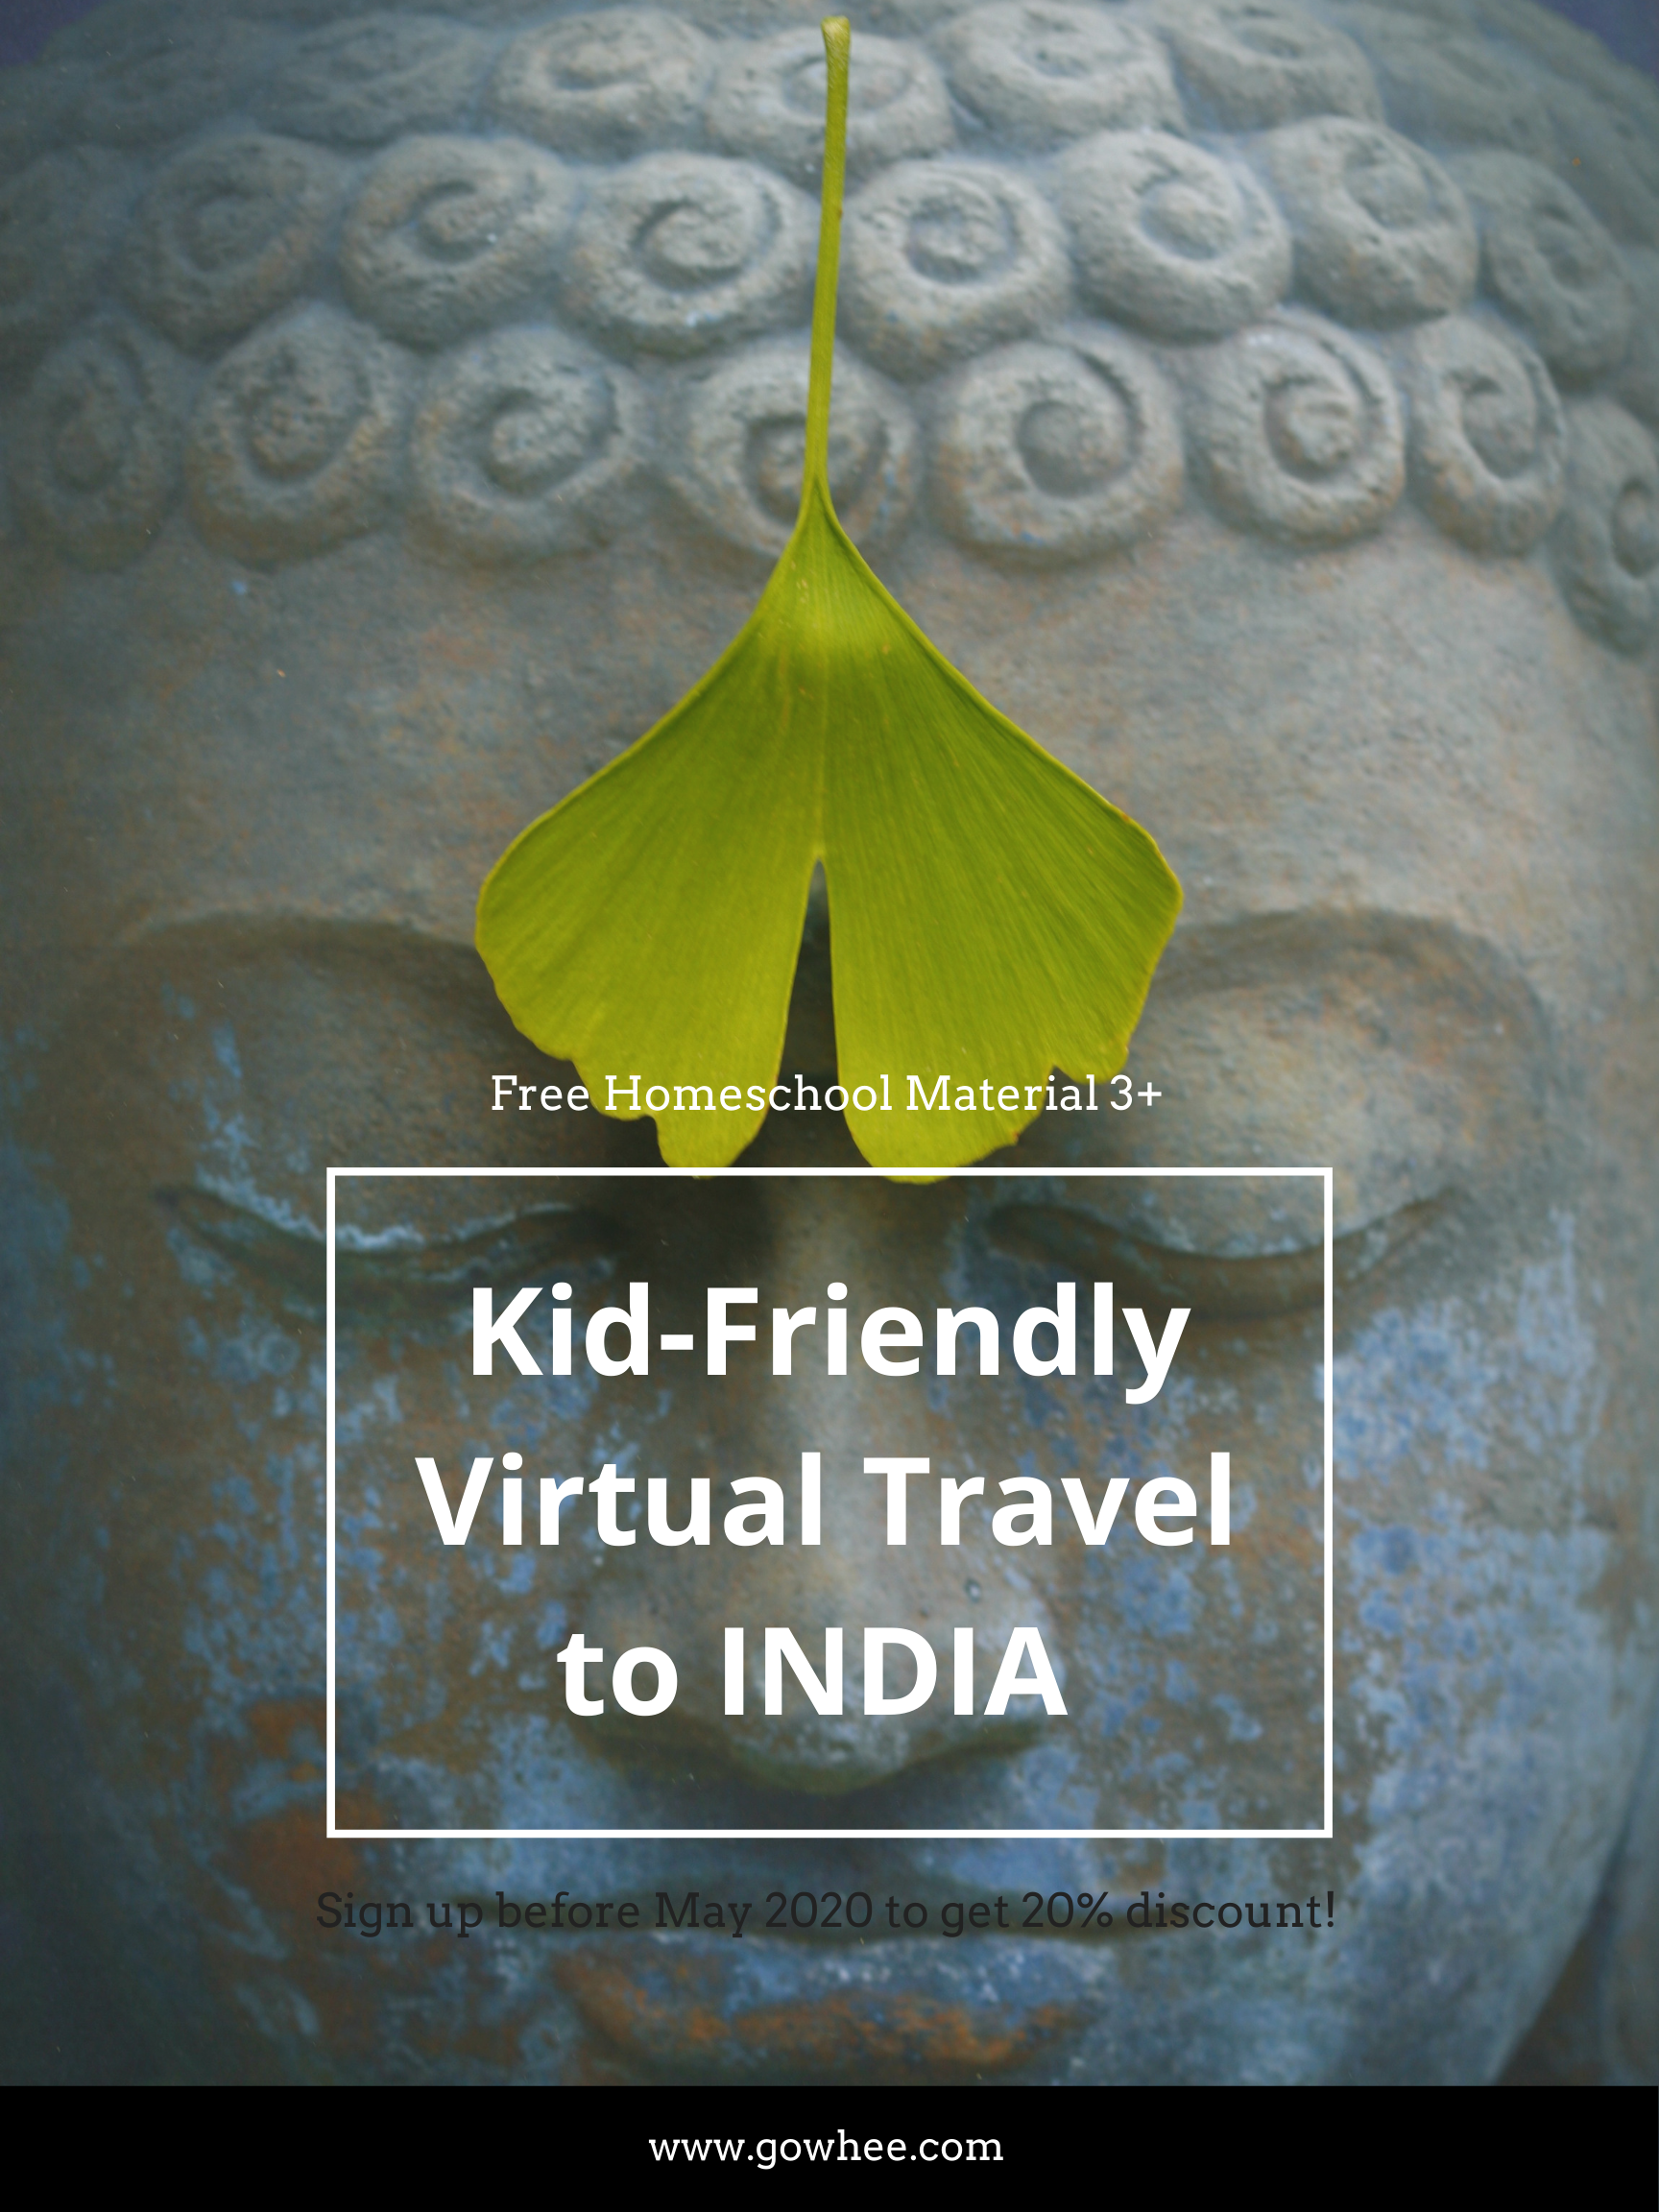 Kid-Friendly Virtual Travel - Homeschool, worldschool activities to learn about india. #homescool #worldschool #kidfriendly #virtualtravel #india #tajMahal #kidsactivities